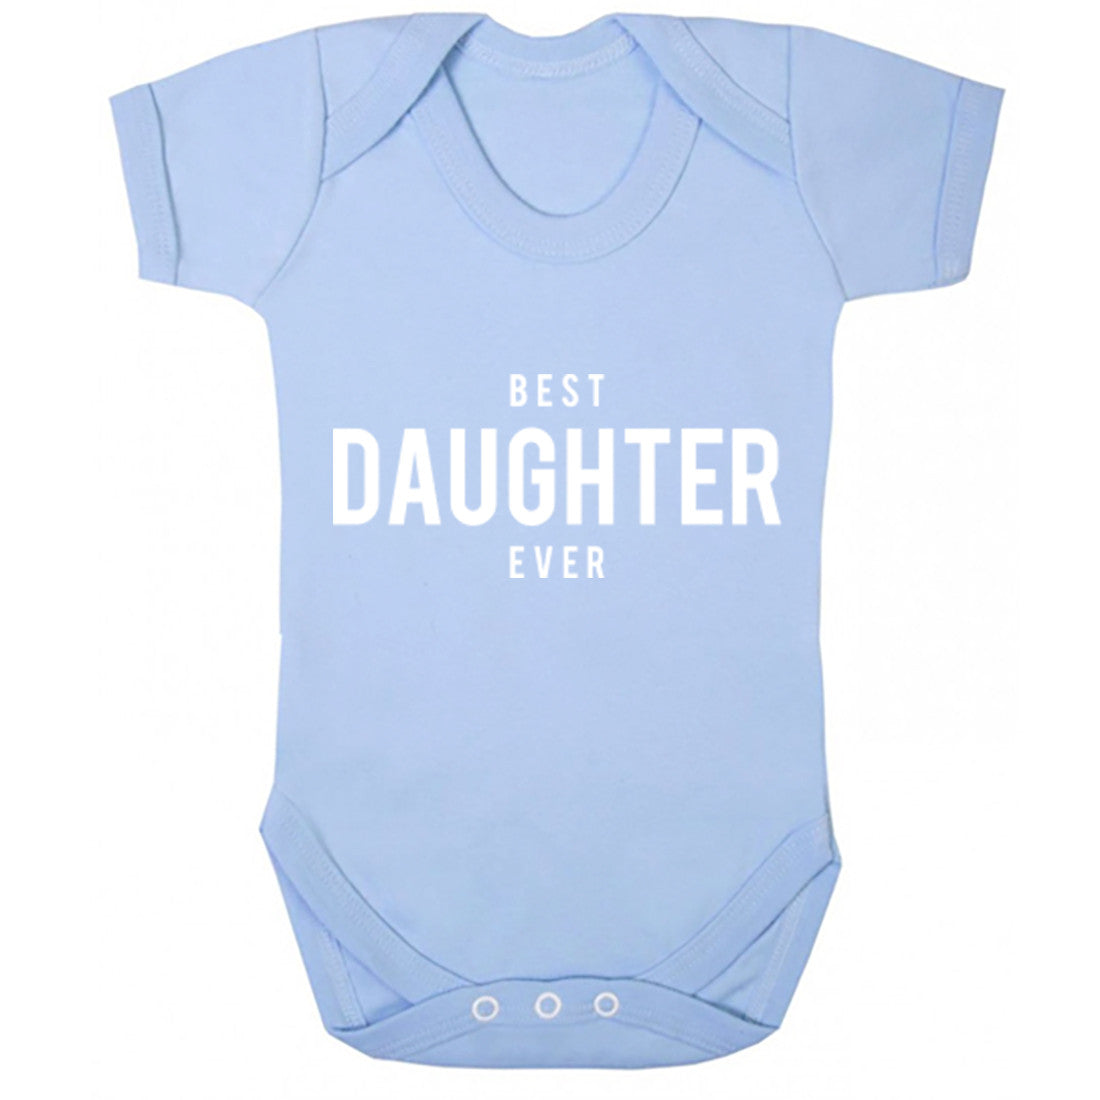 Best Daughter Ever Baby Vest K1459 - Illustrated Identity Ltd.